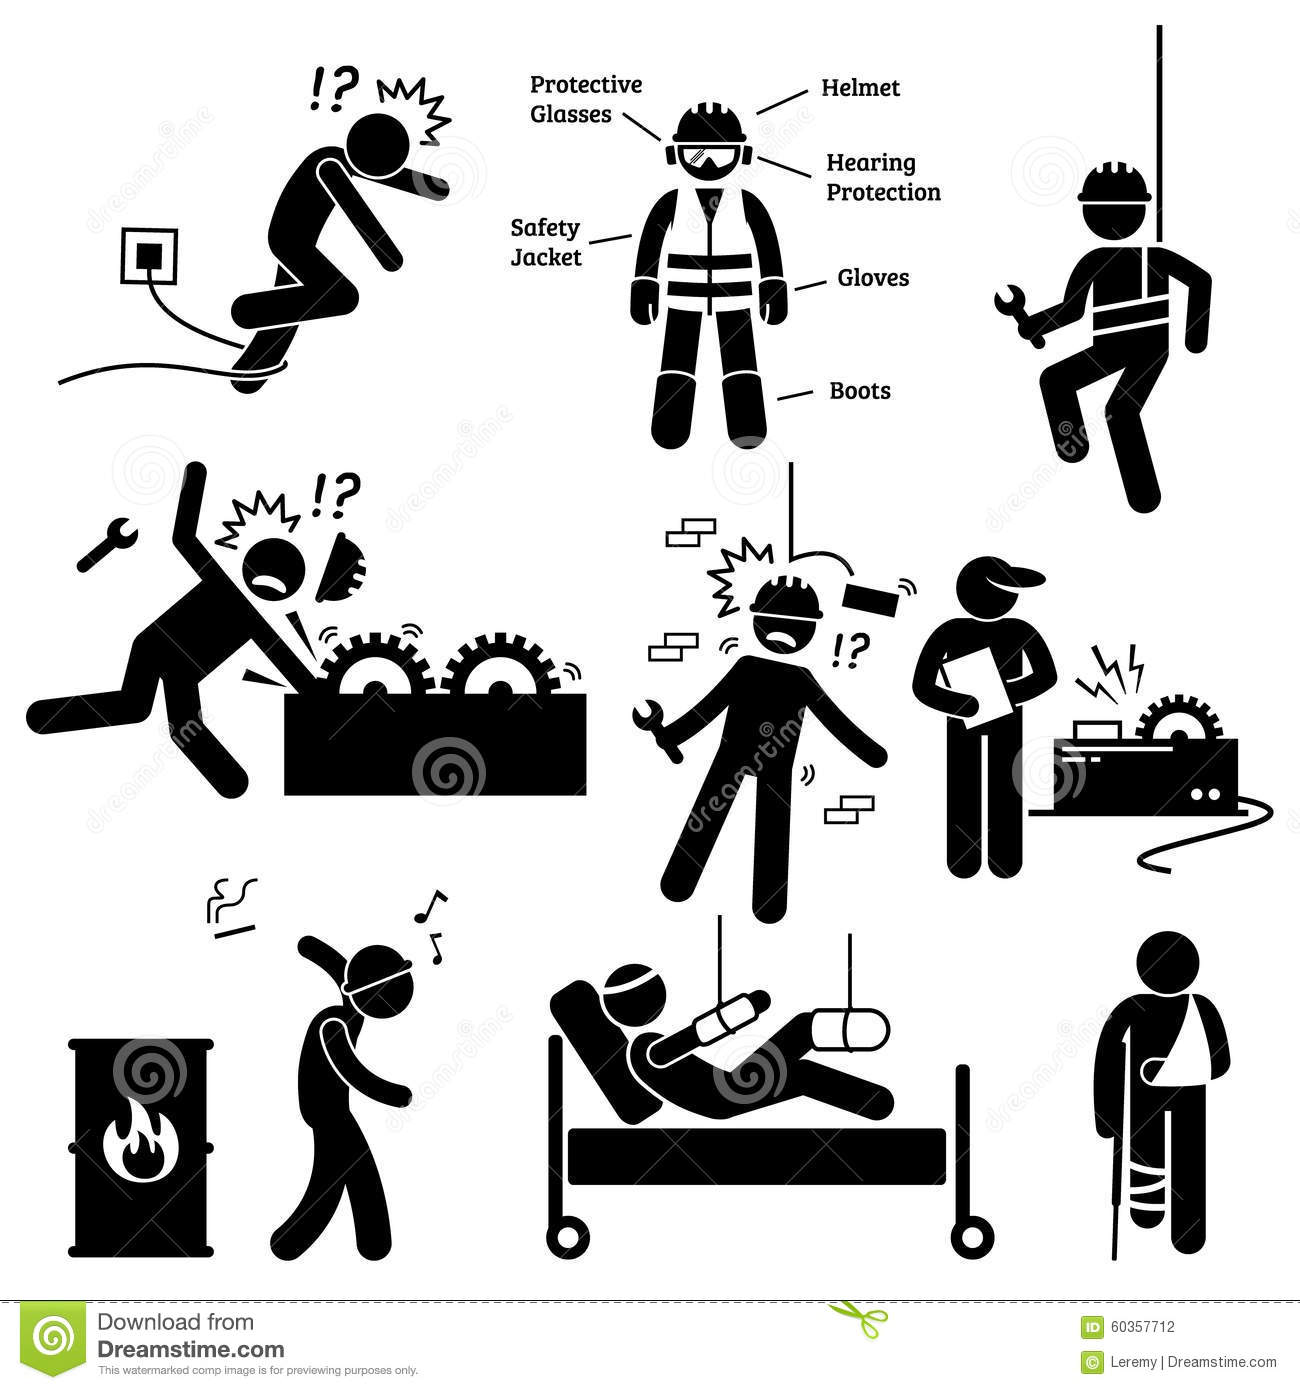 Occupational Safety And Health Worker Accident Hazard